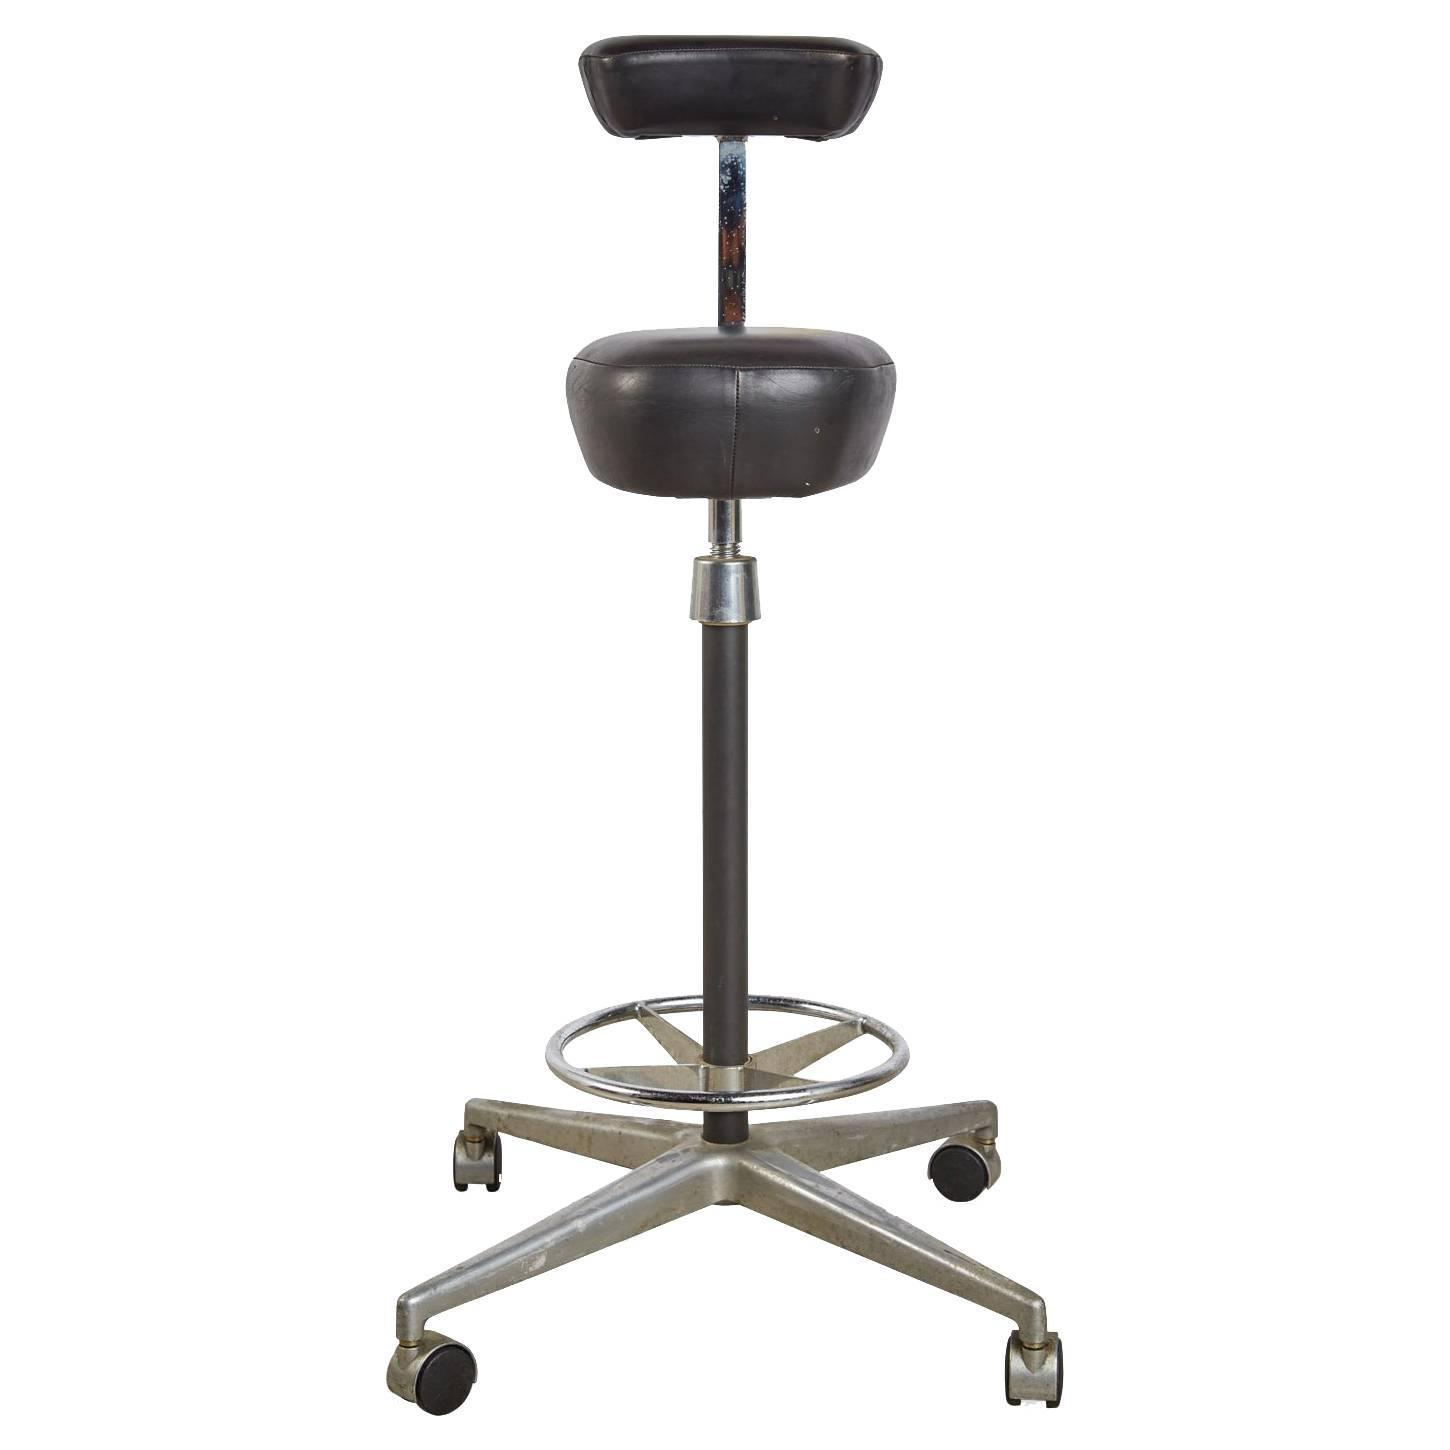 George Nelson for Herman Miller Adjustable Height Drafting Stool